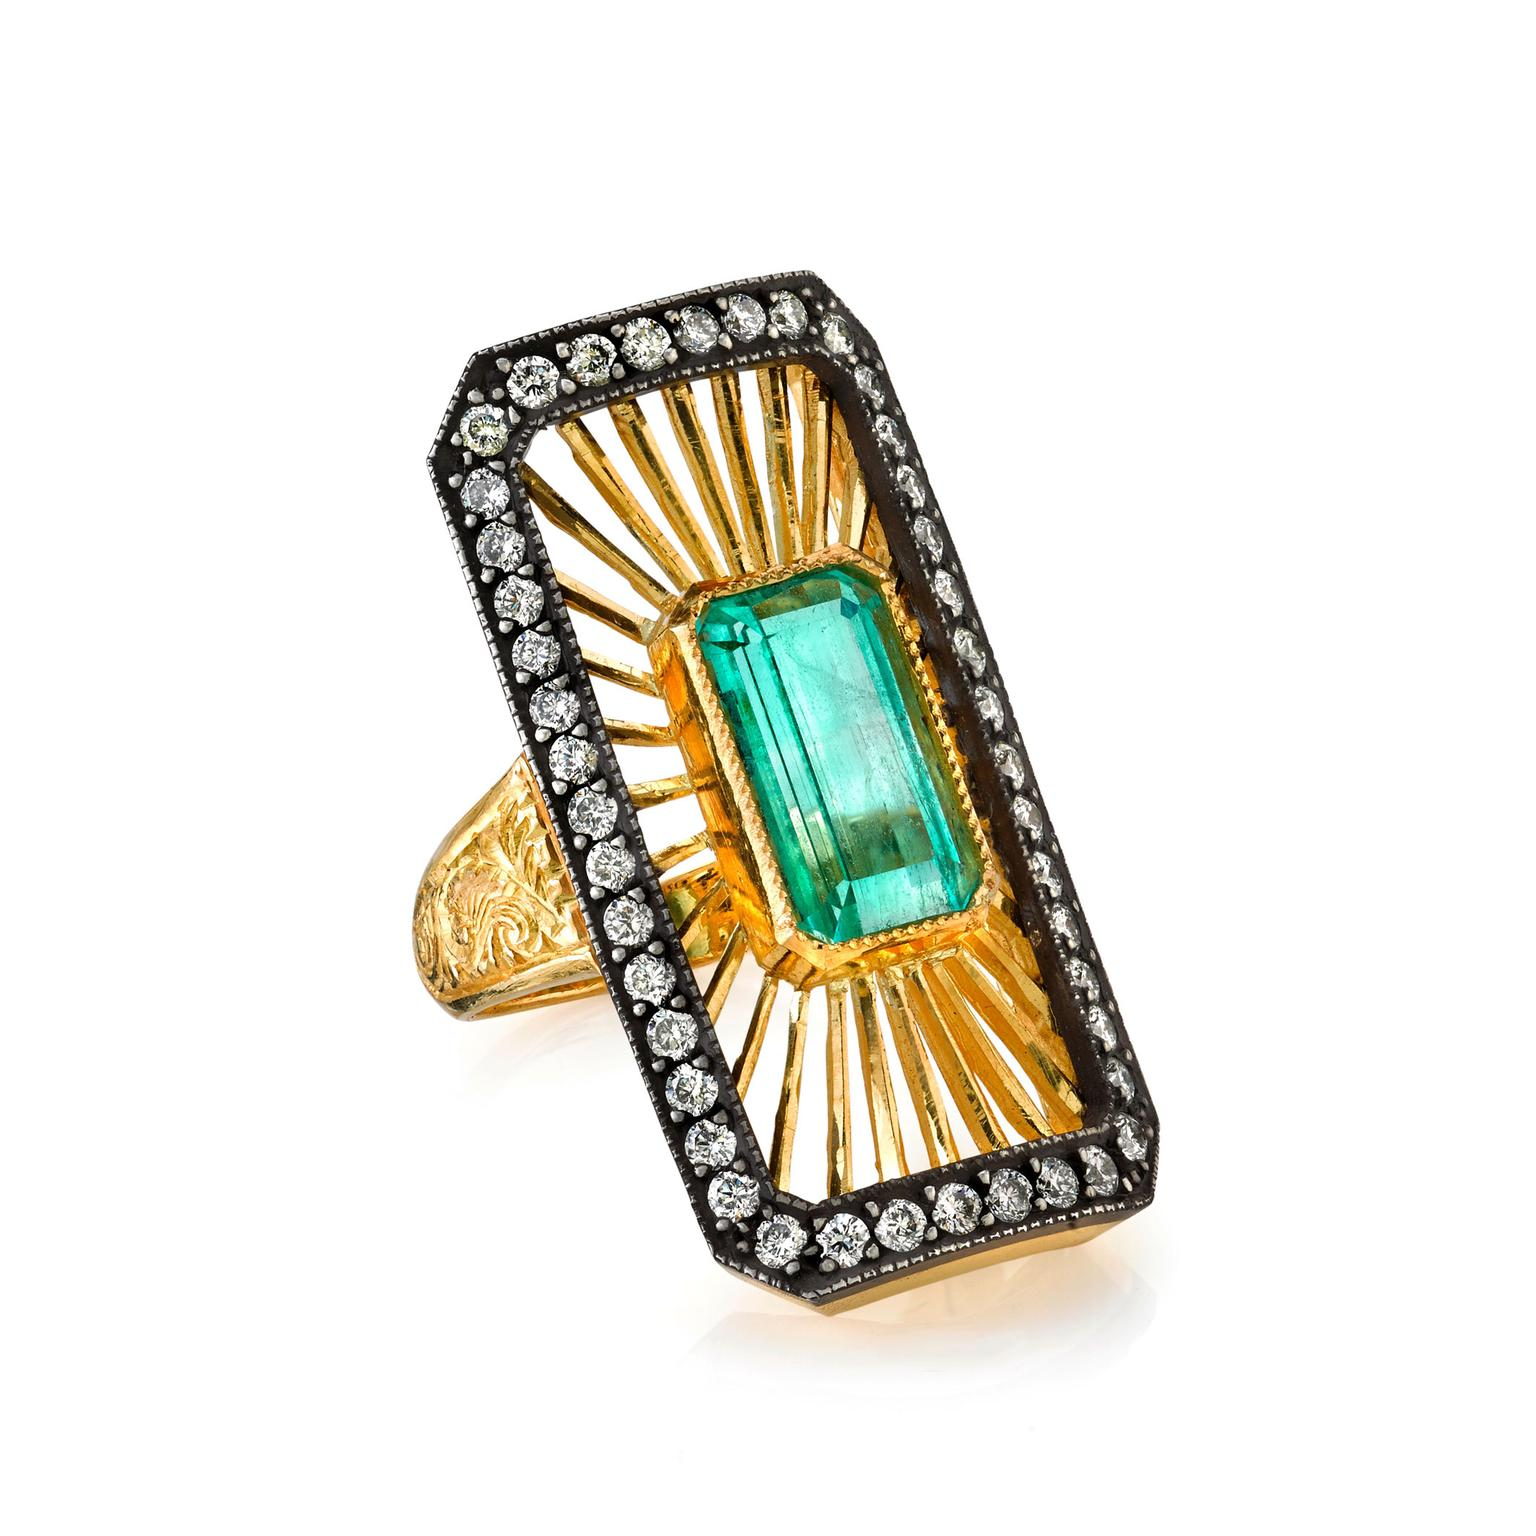 Arman Sarkisyan emerald and diamond ring